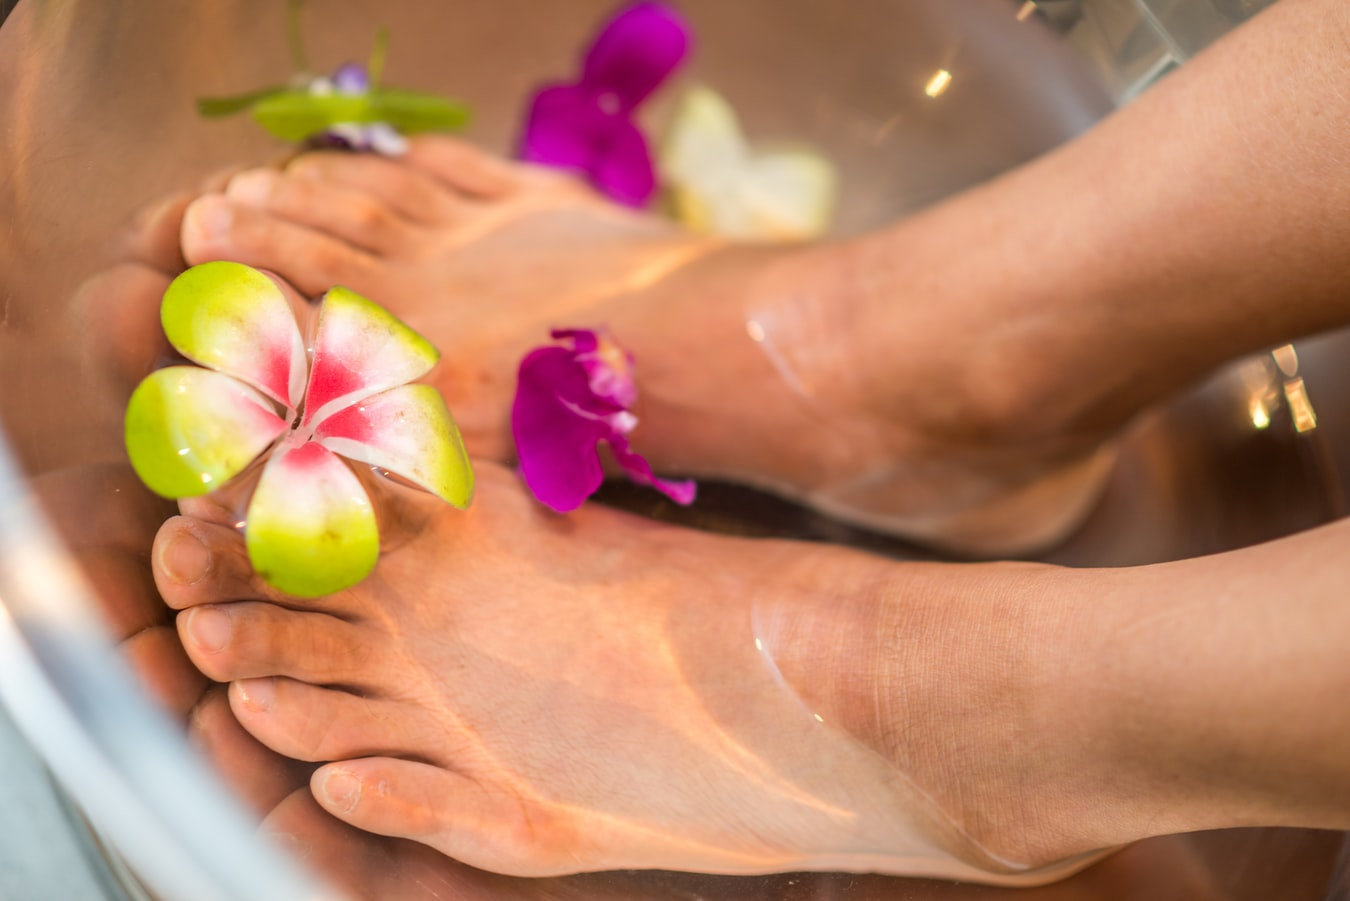 feet being treated to how to get rid of athlete's foot